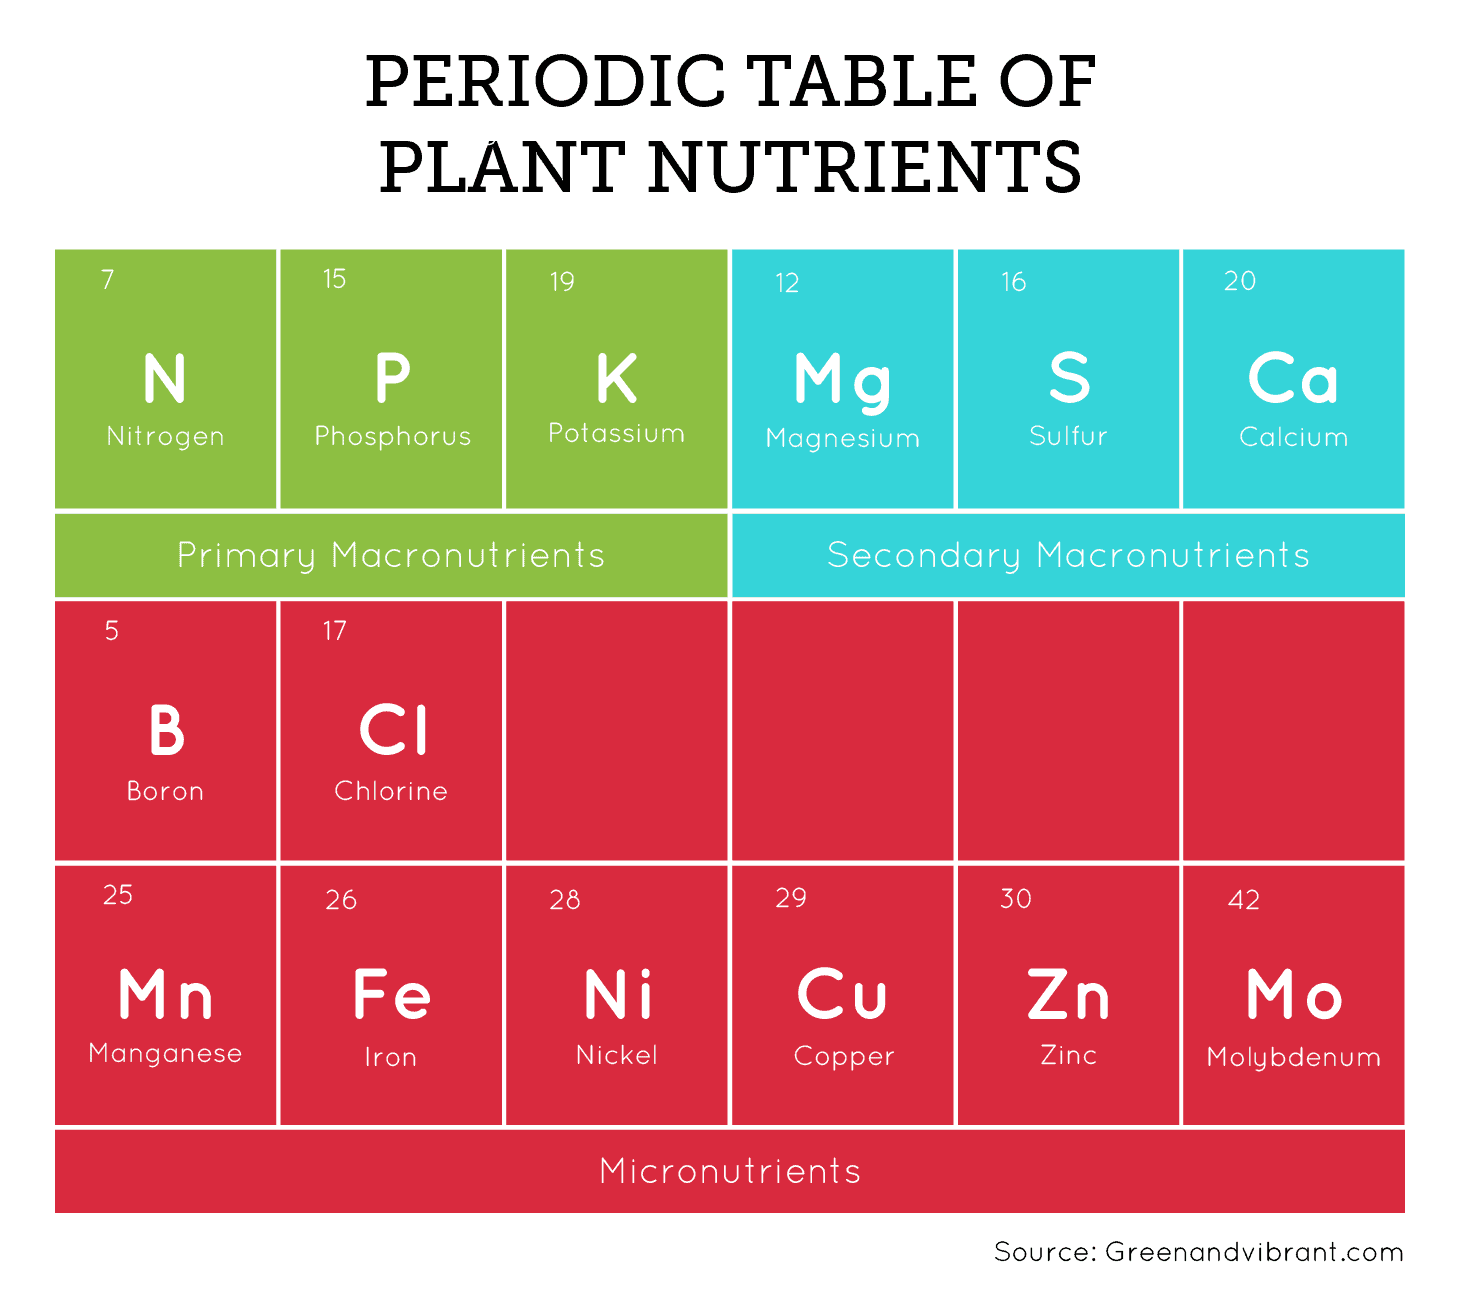 Periodic Tables of Plant Nutrients